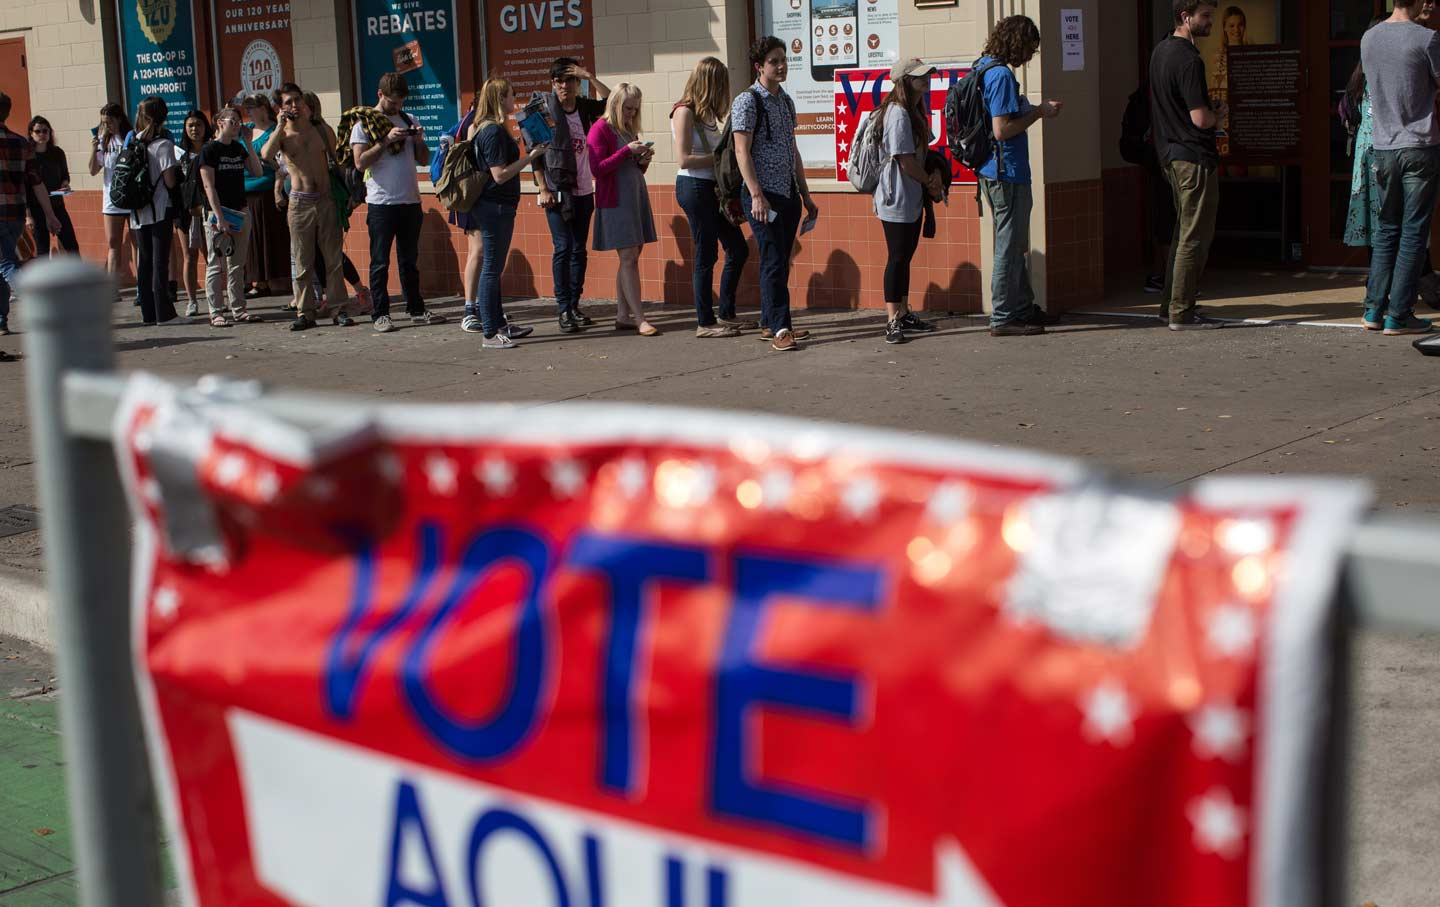 Voters Were Blocked From the Polls on Super Tuesday by New Restrictions